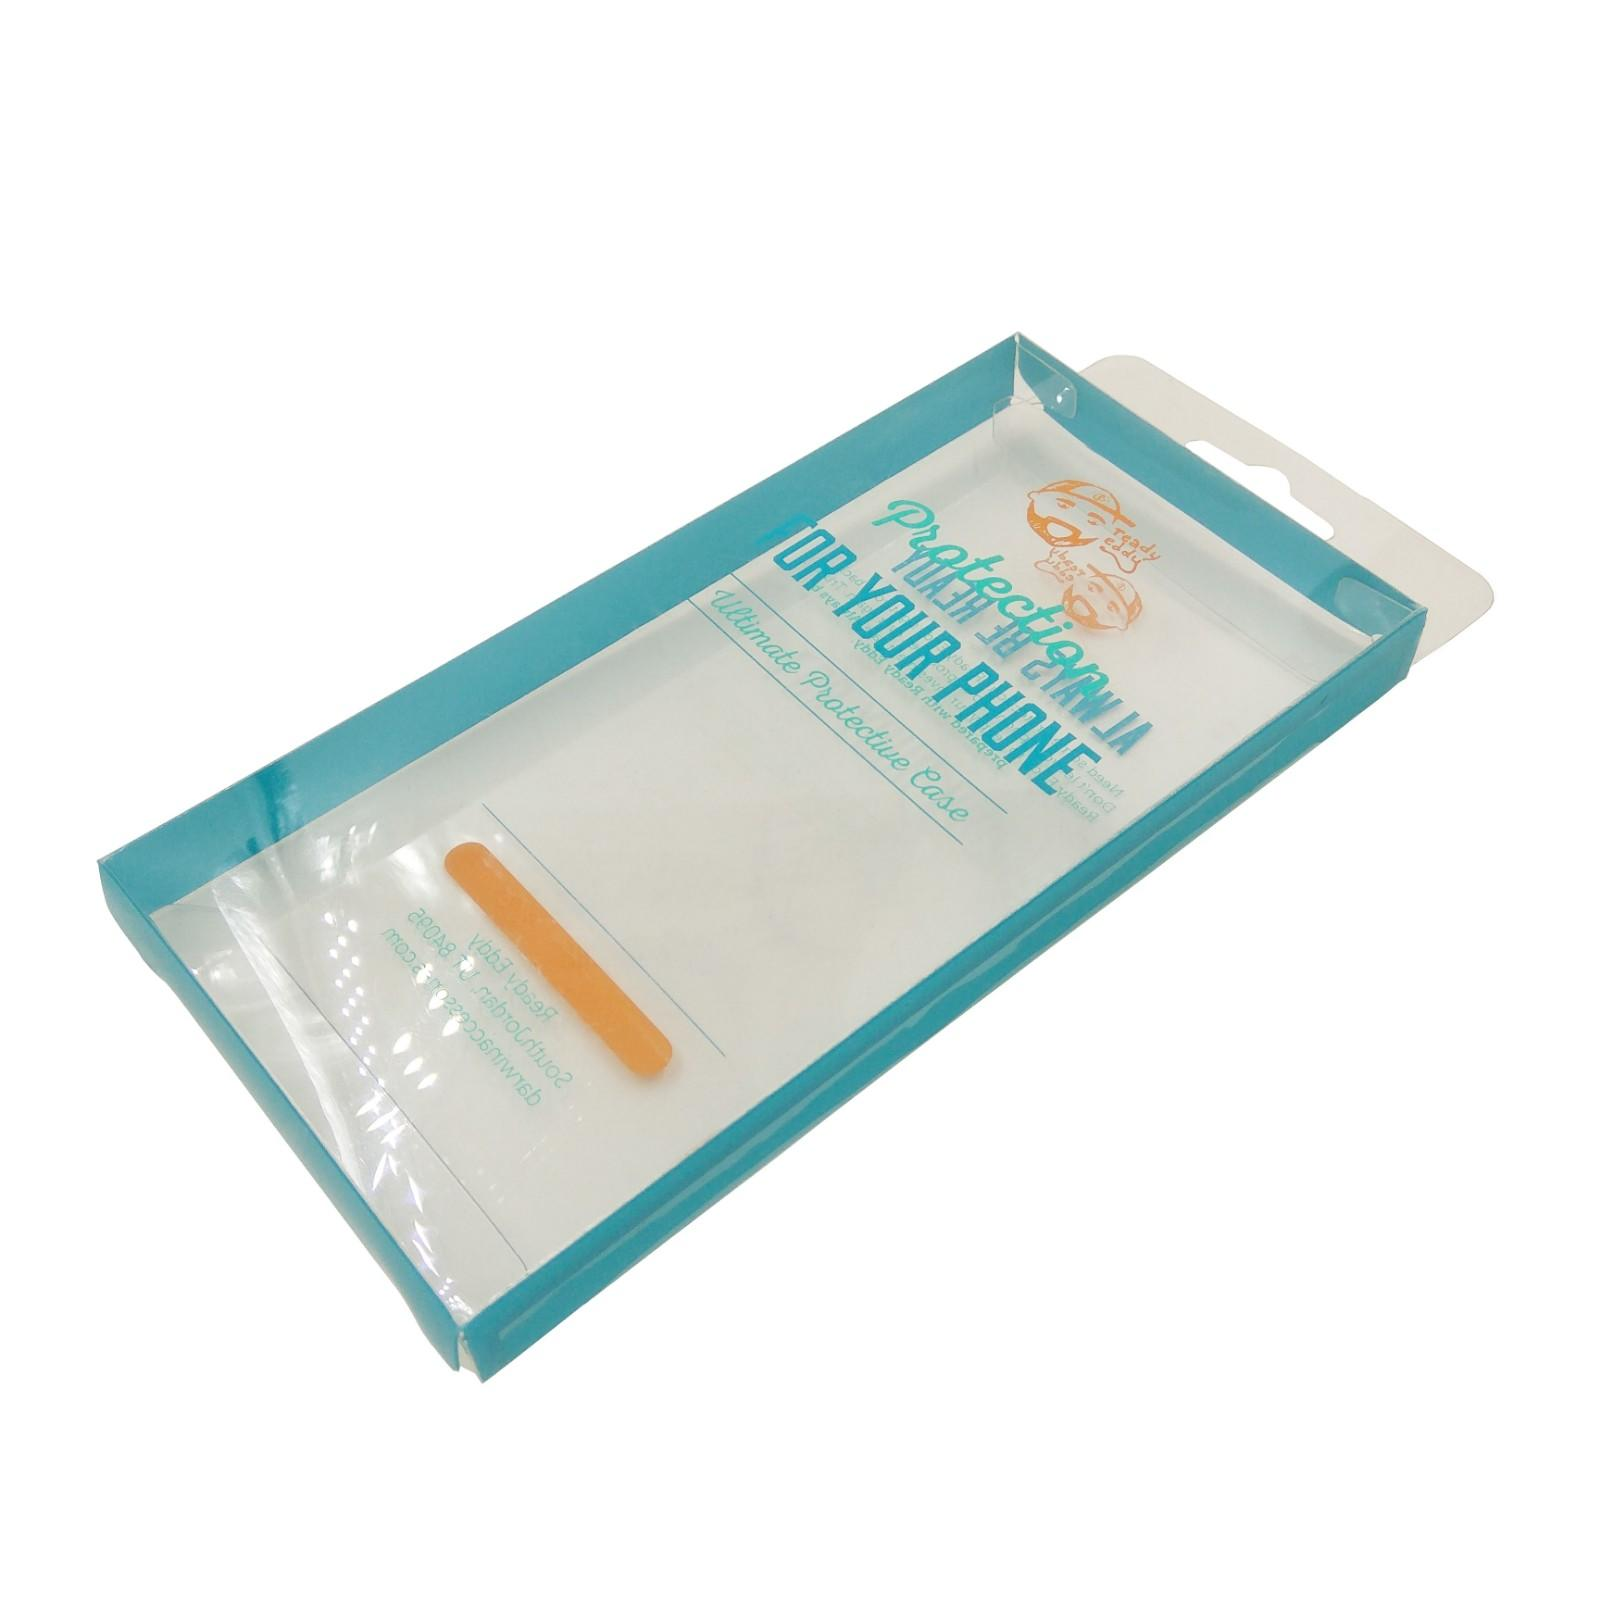 Yijianxing Plastic Products newly plastic box packaging for wholesale for packing-3